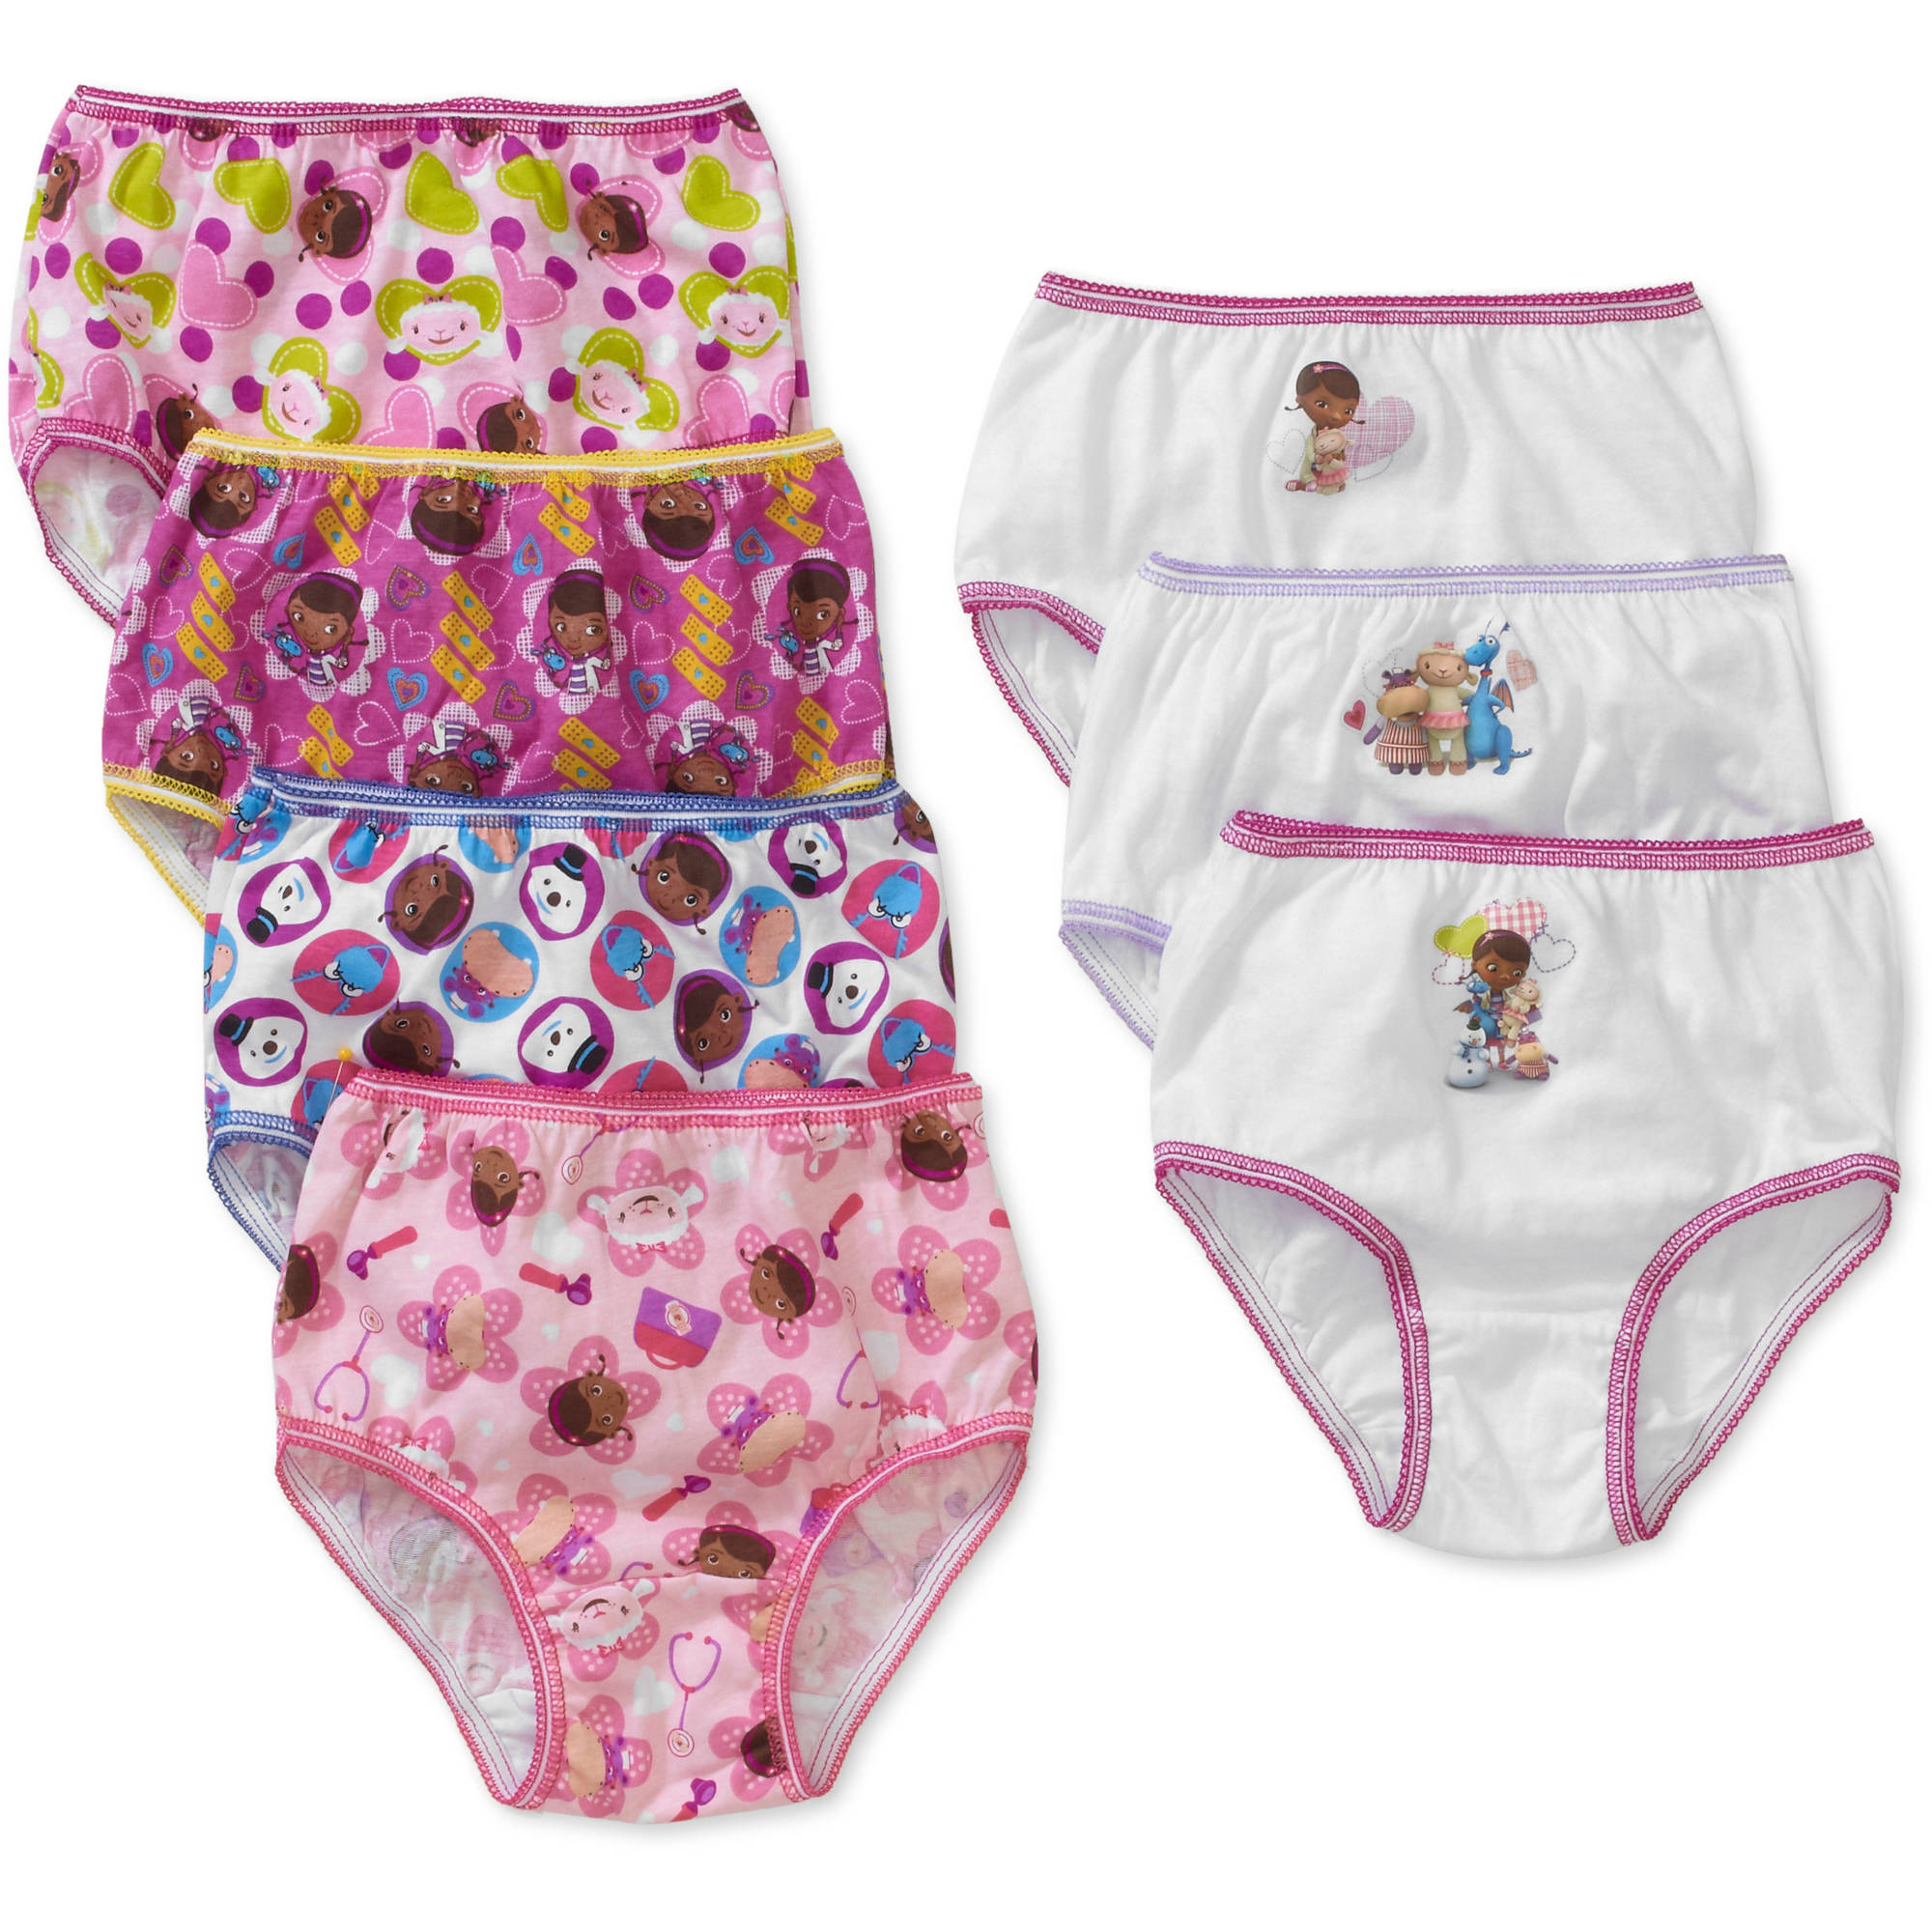 Doc McStuffins Toddler Girls Underwear, 7 Pack